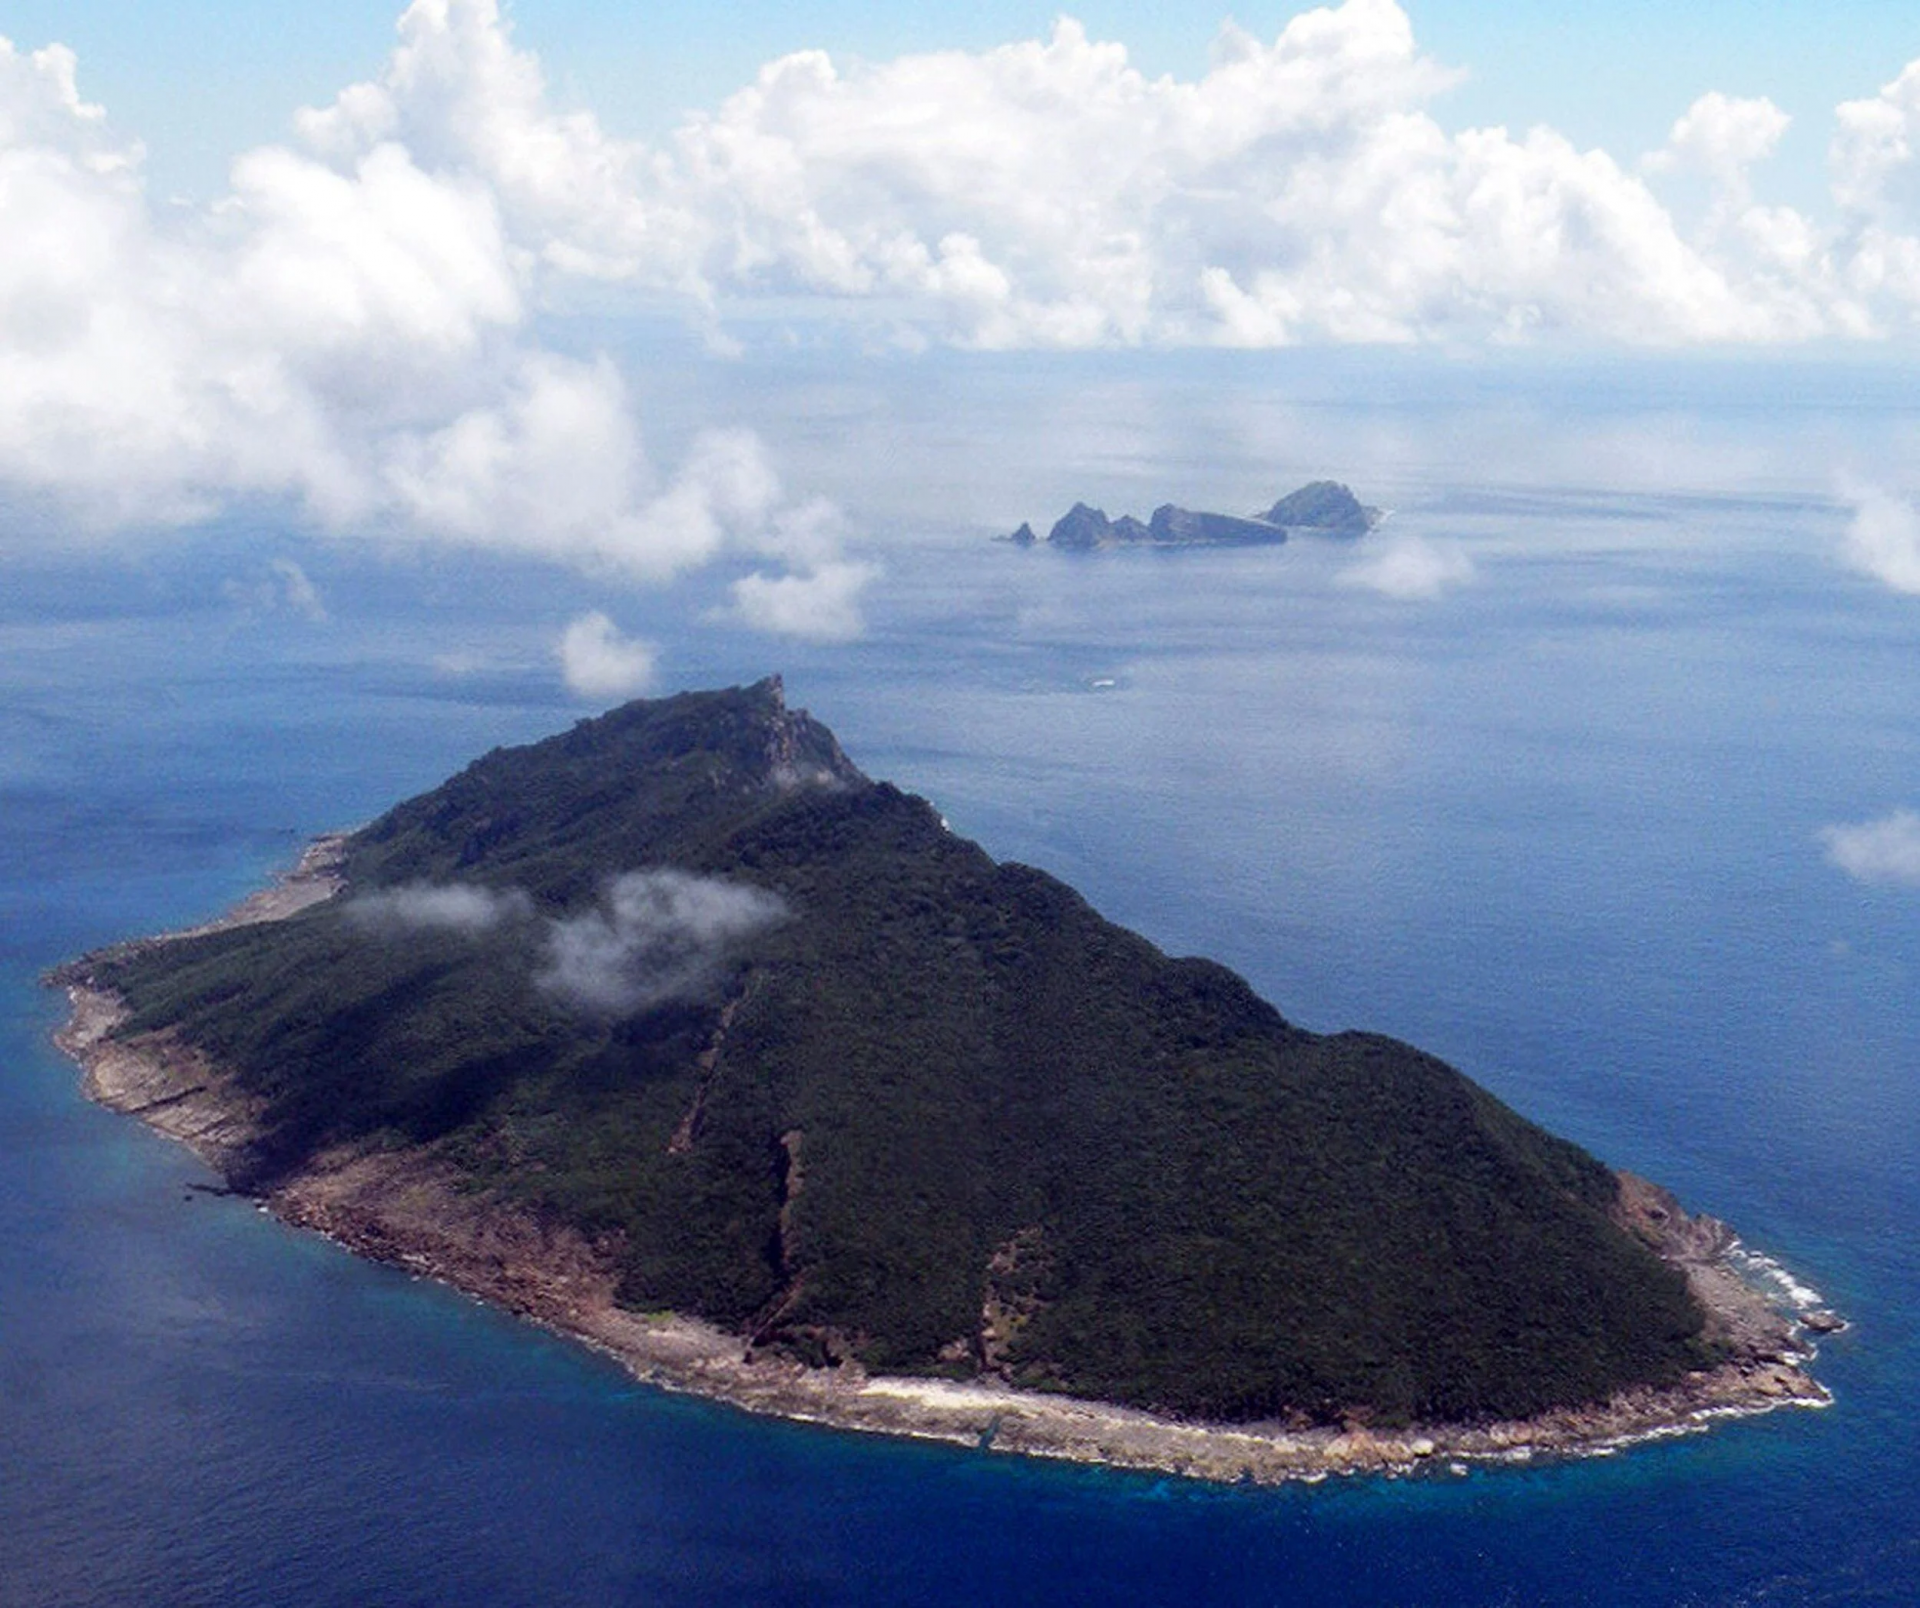 east china sea japan asks china to take down digital museum on disputed island